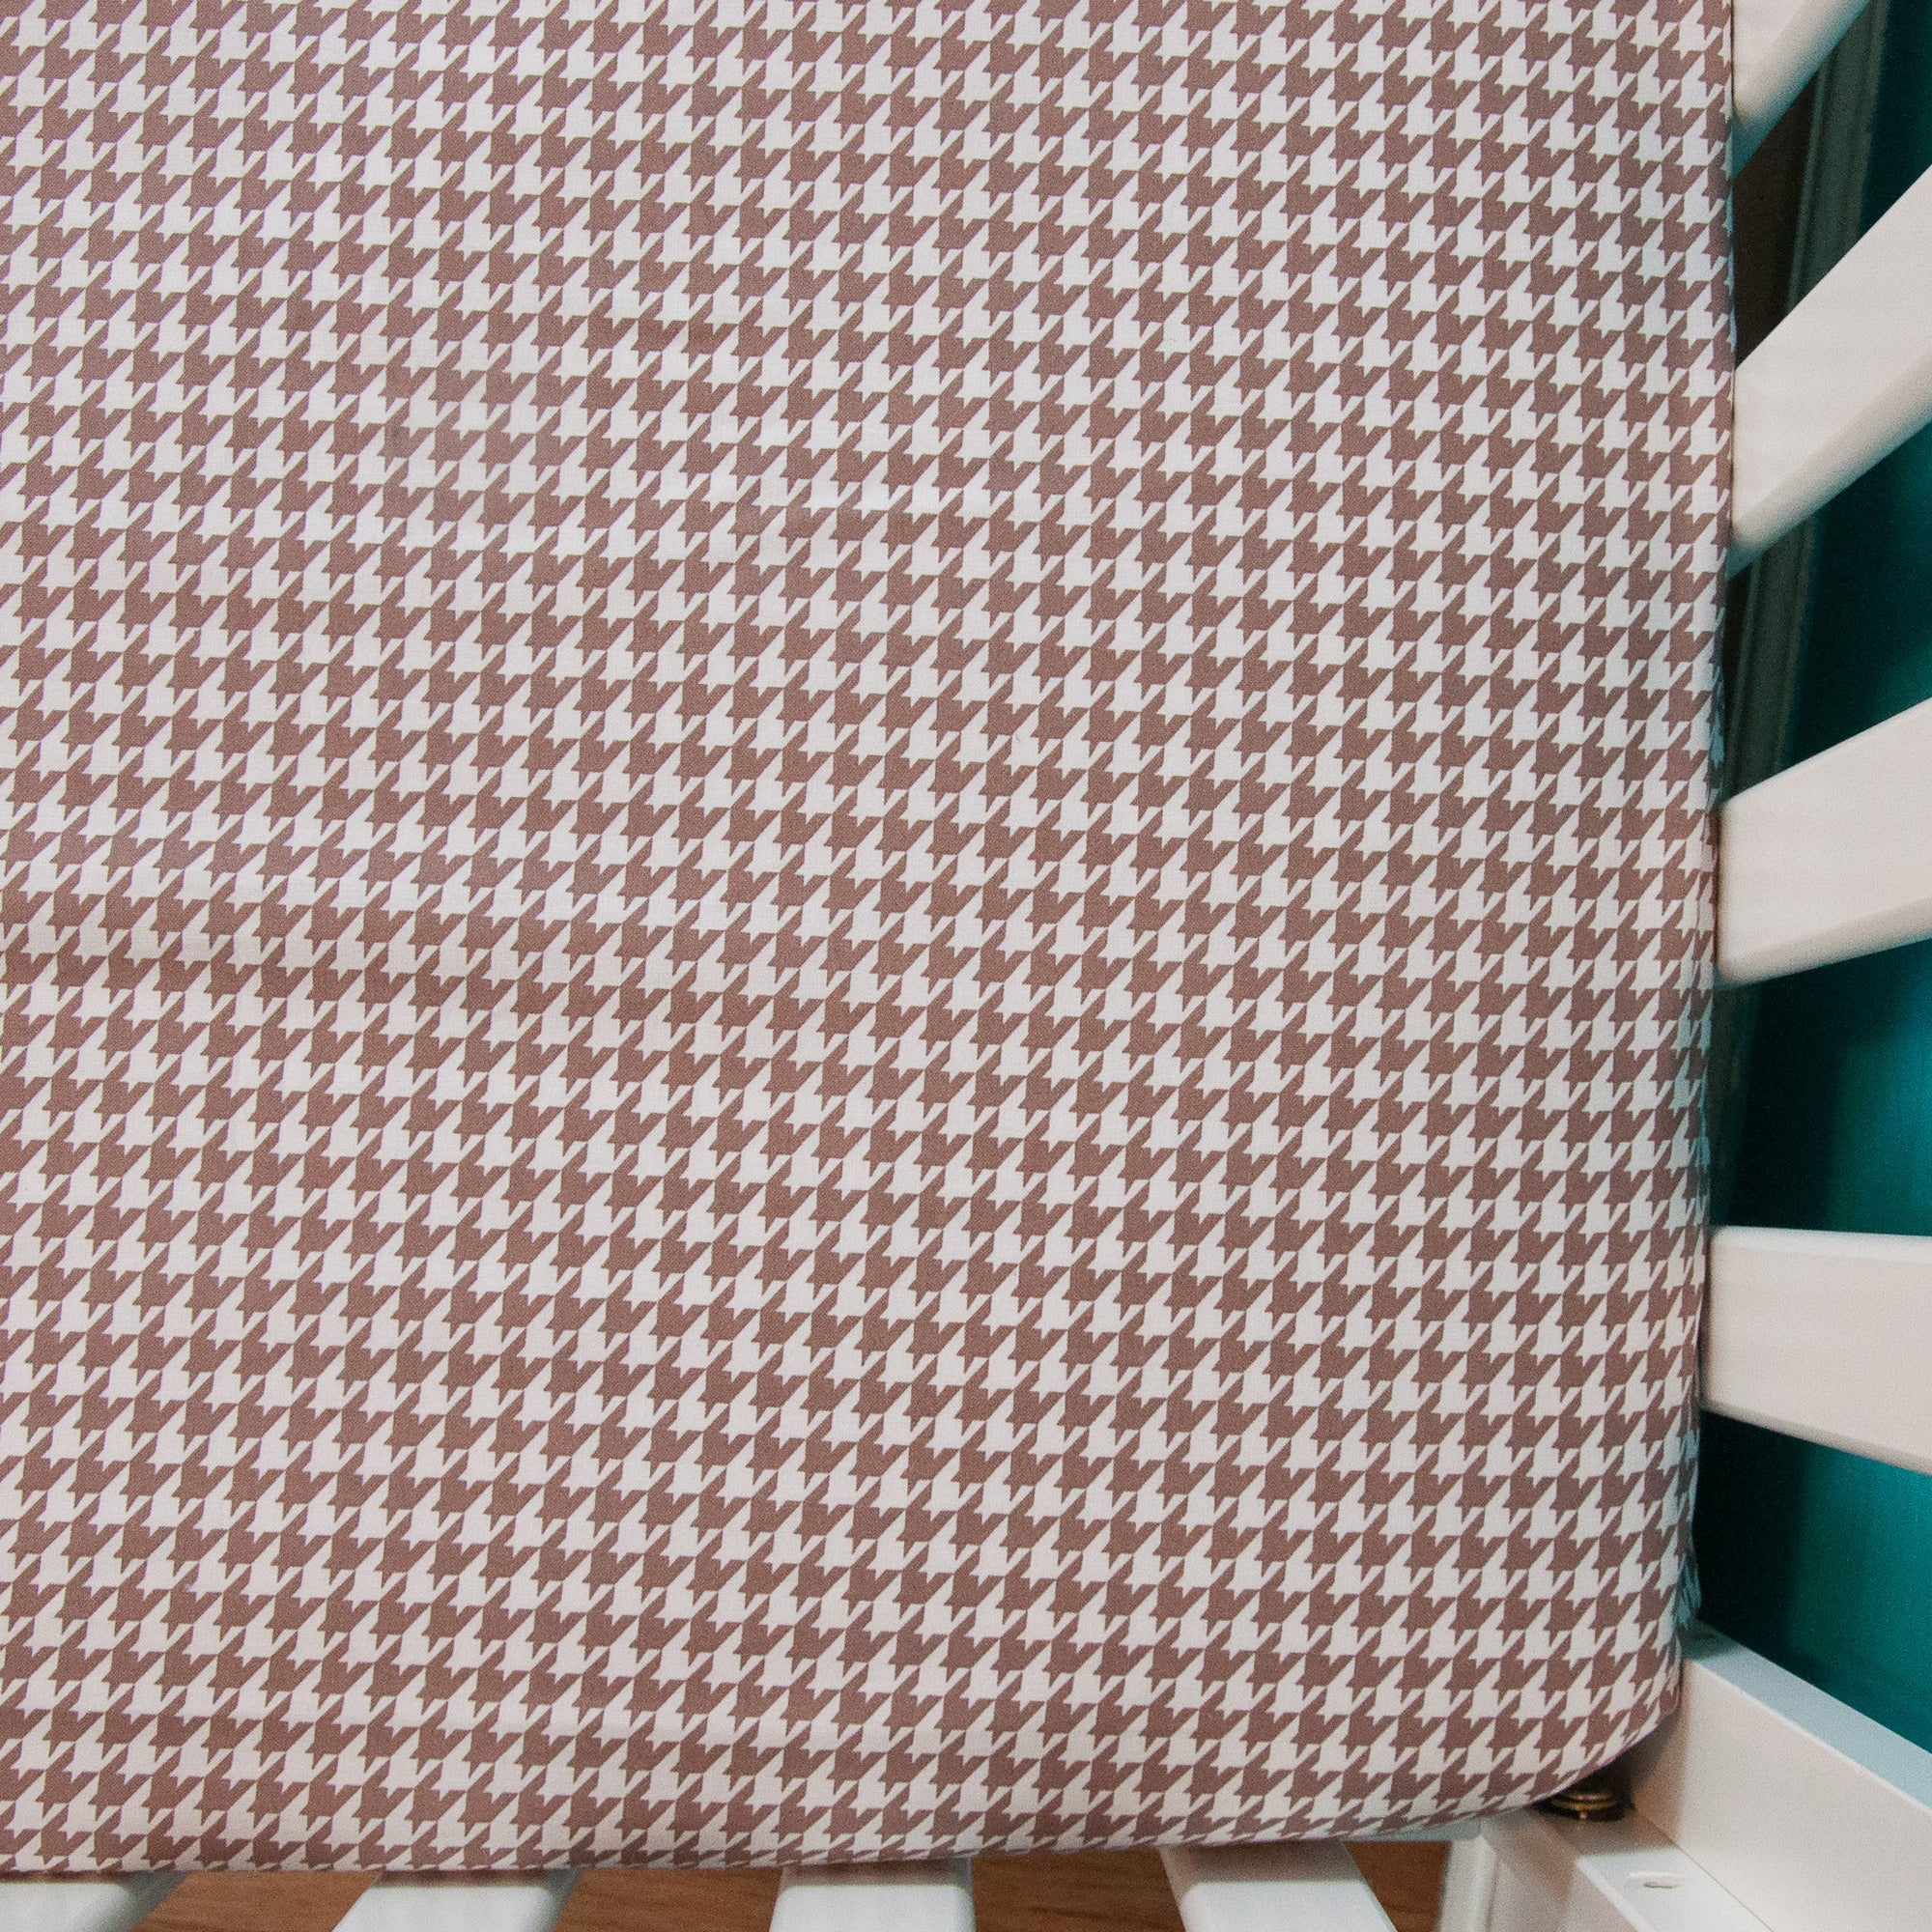 Grey Houndstooth Fitted Crib Sheet, Crib Sheets, - MarshMueller